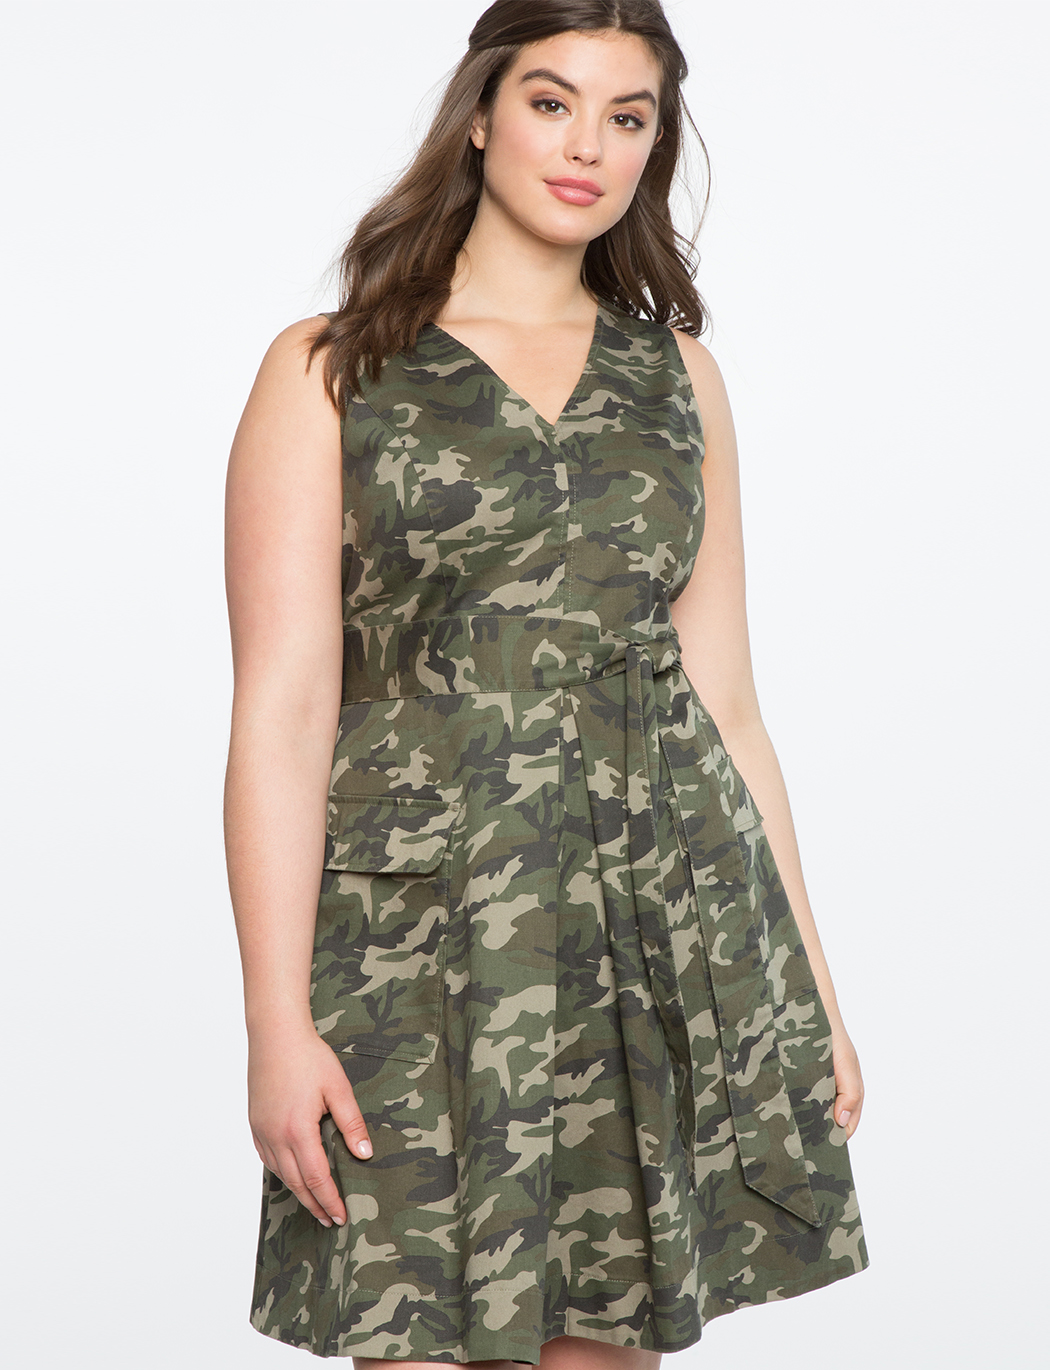 Sleeveless Fit and Flare Camo Dress | Women\'s Plus Size Dresses | ELOQUII